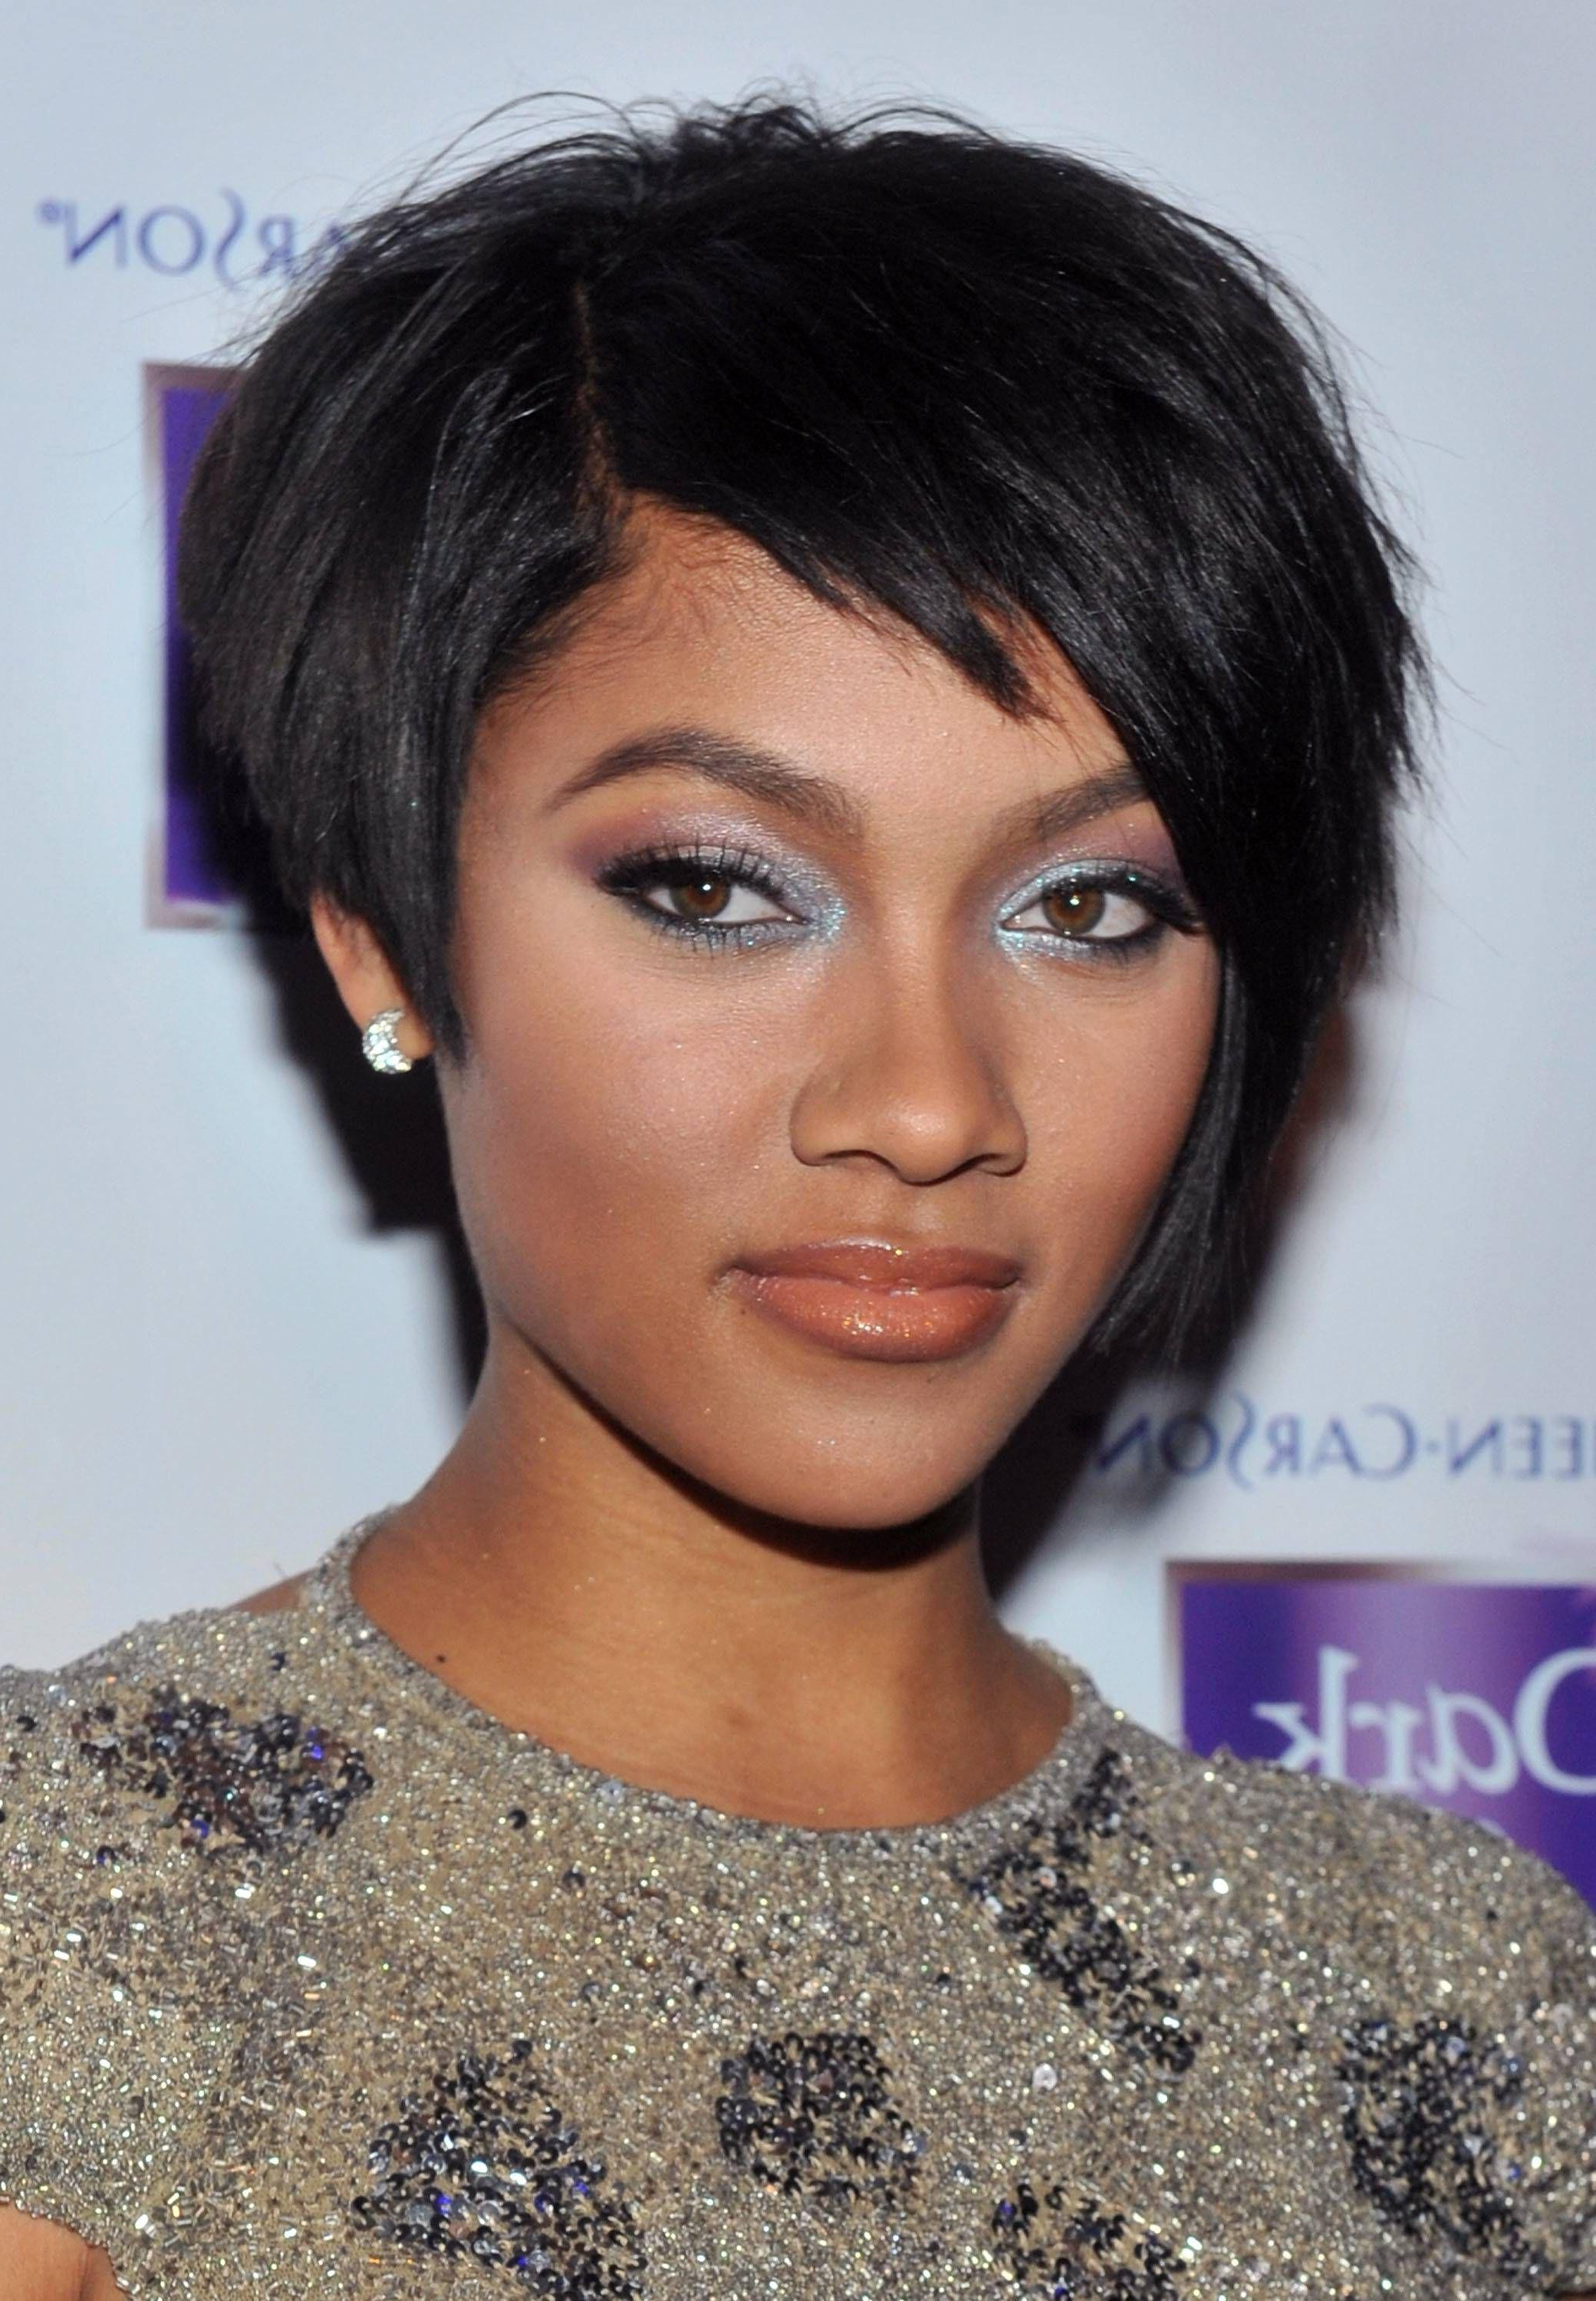 Beautiful Short Hairstyles For Black Women With Round Faces 2016 Concept Intended For Short Haircuts For Round Faces Black Hair (View 20 of 25)